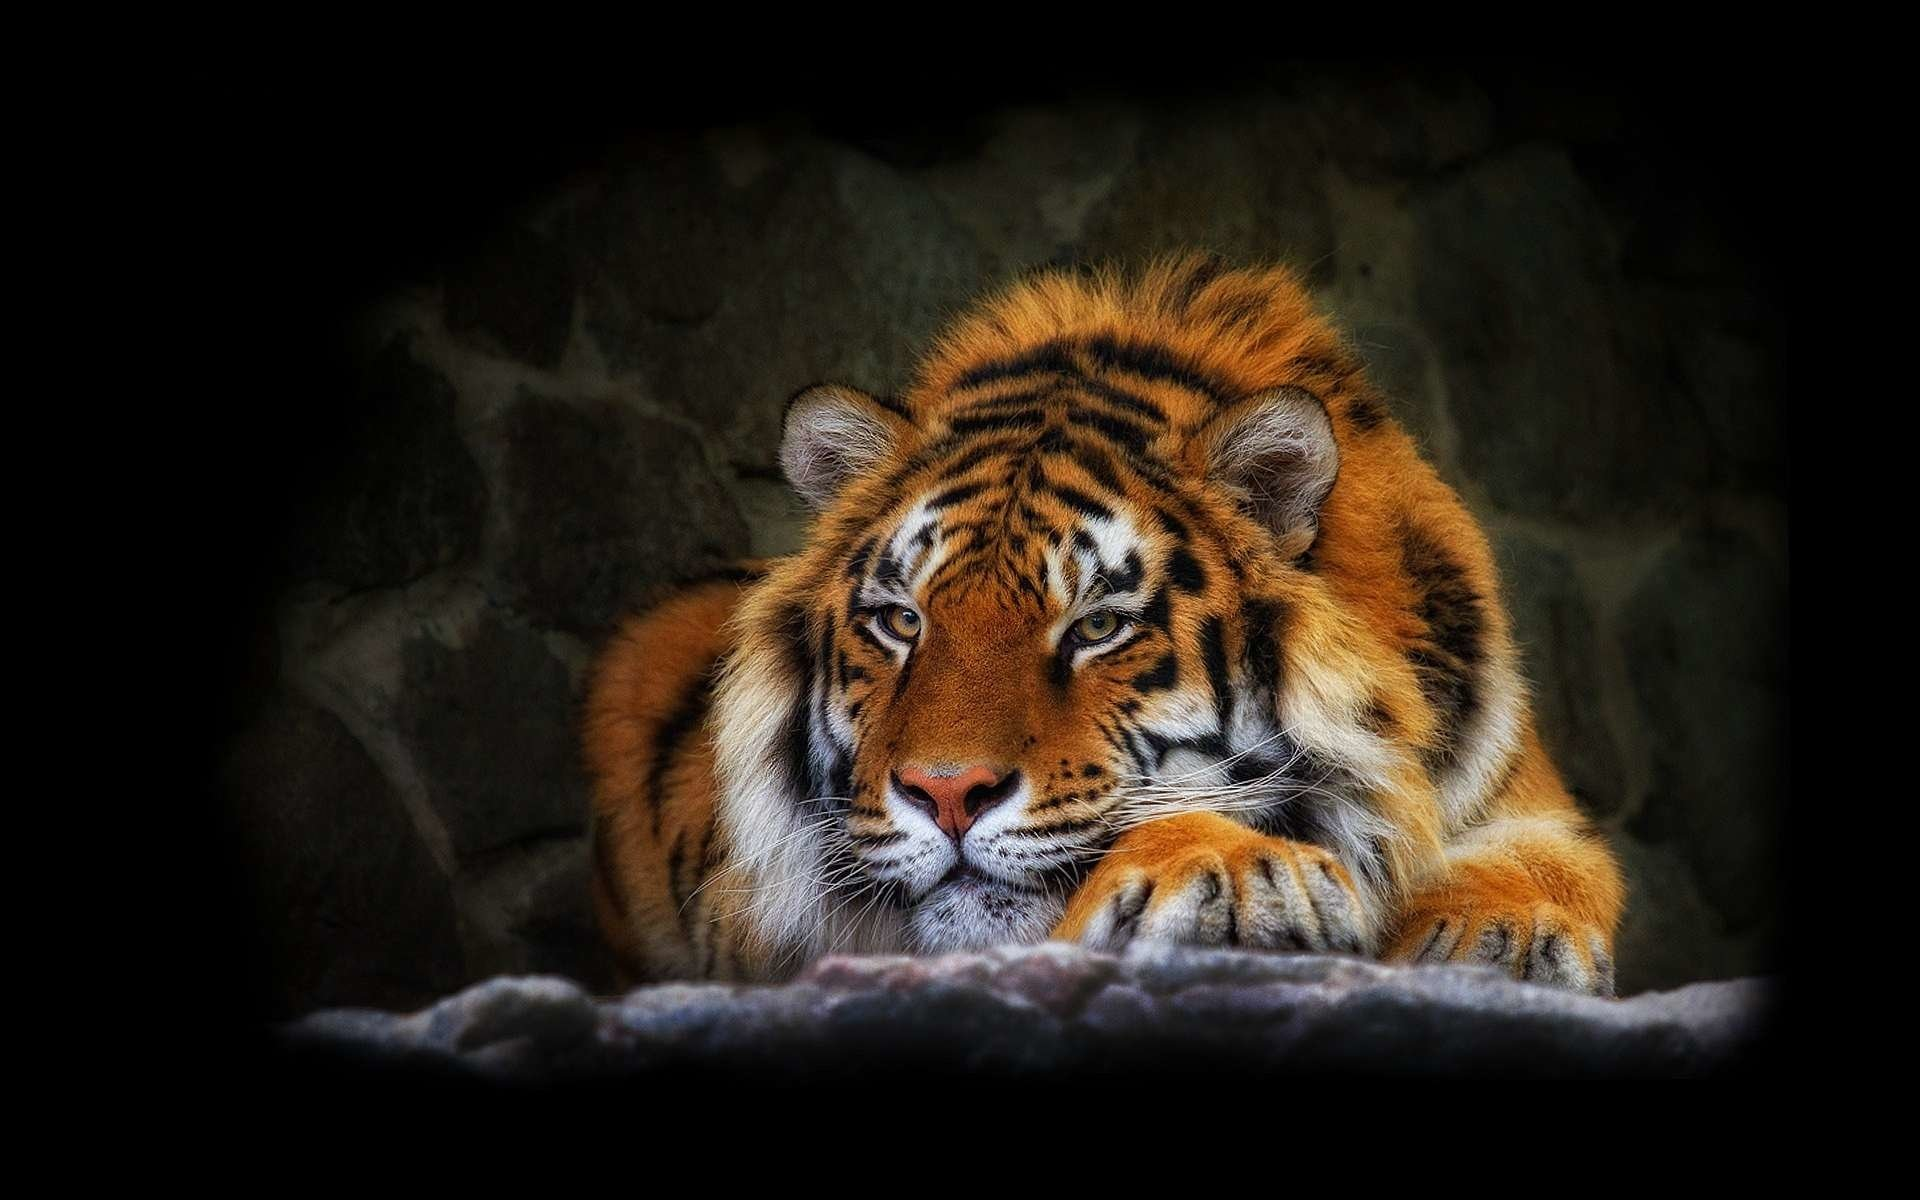 Beautiful Wallpaper High Resolution Tiger - thumb-1920-324170  HD_346528.jpg